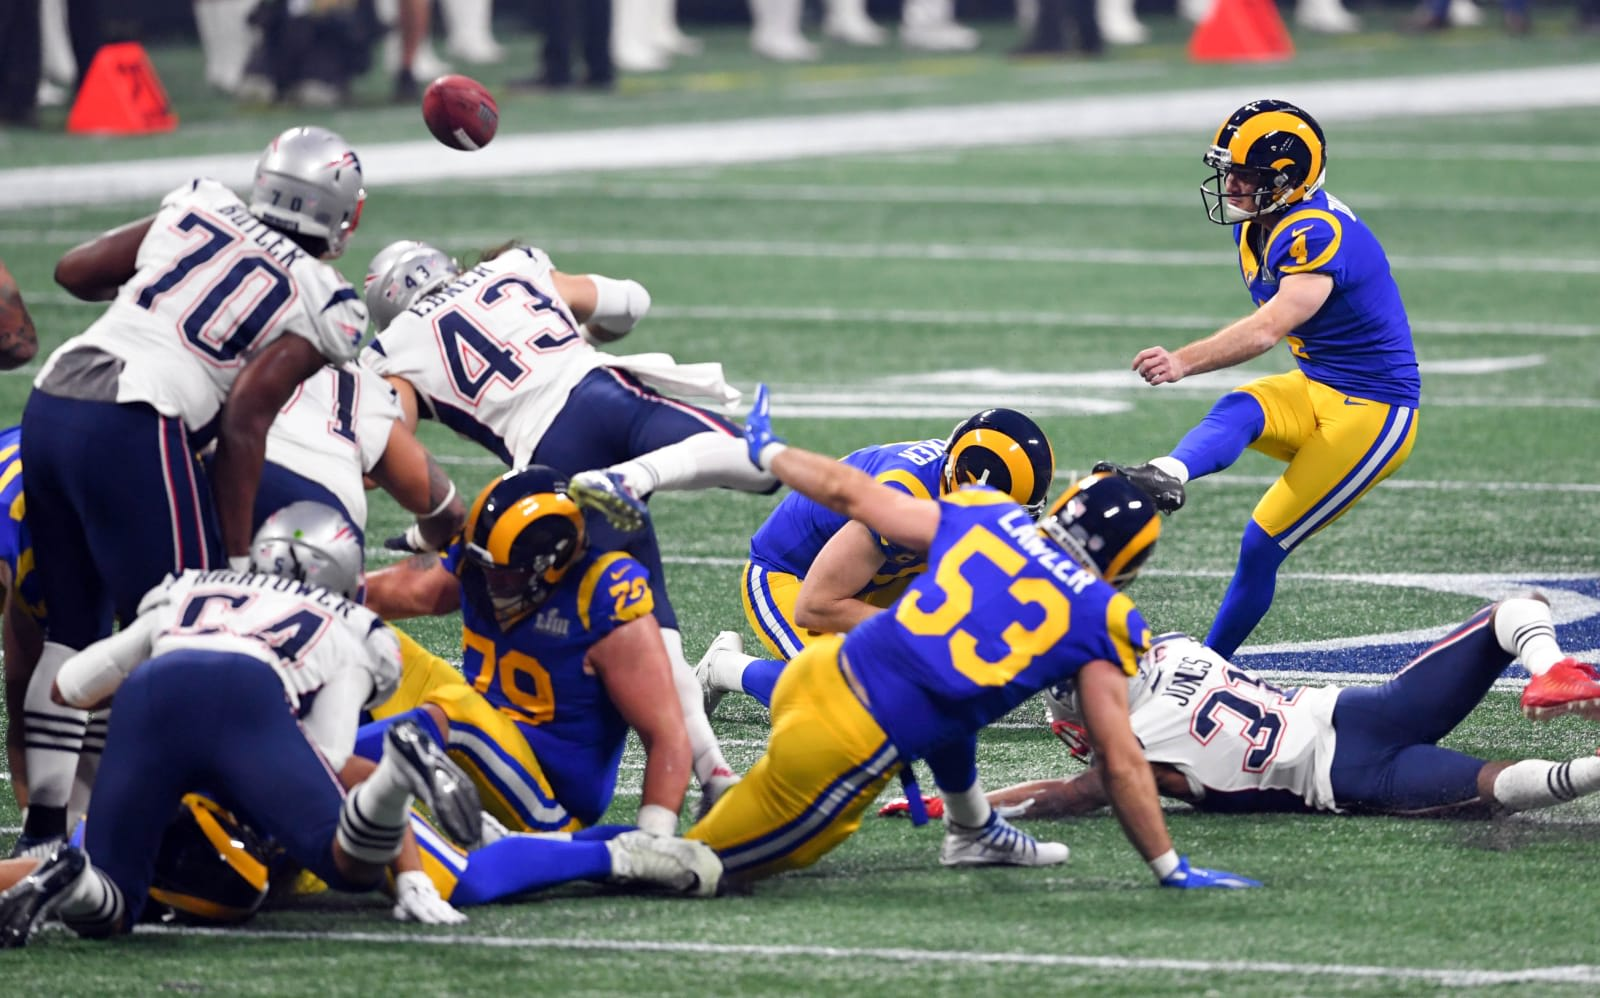 Twitter's expanded live programming includes new NFL shows